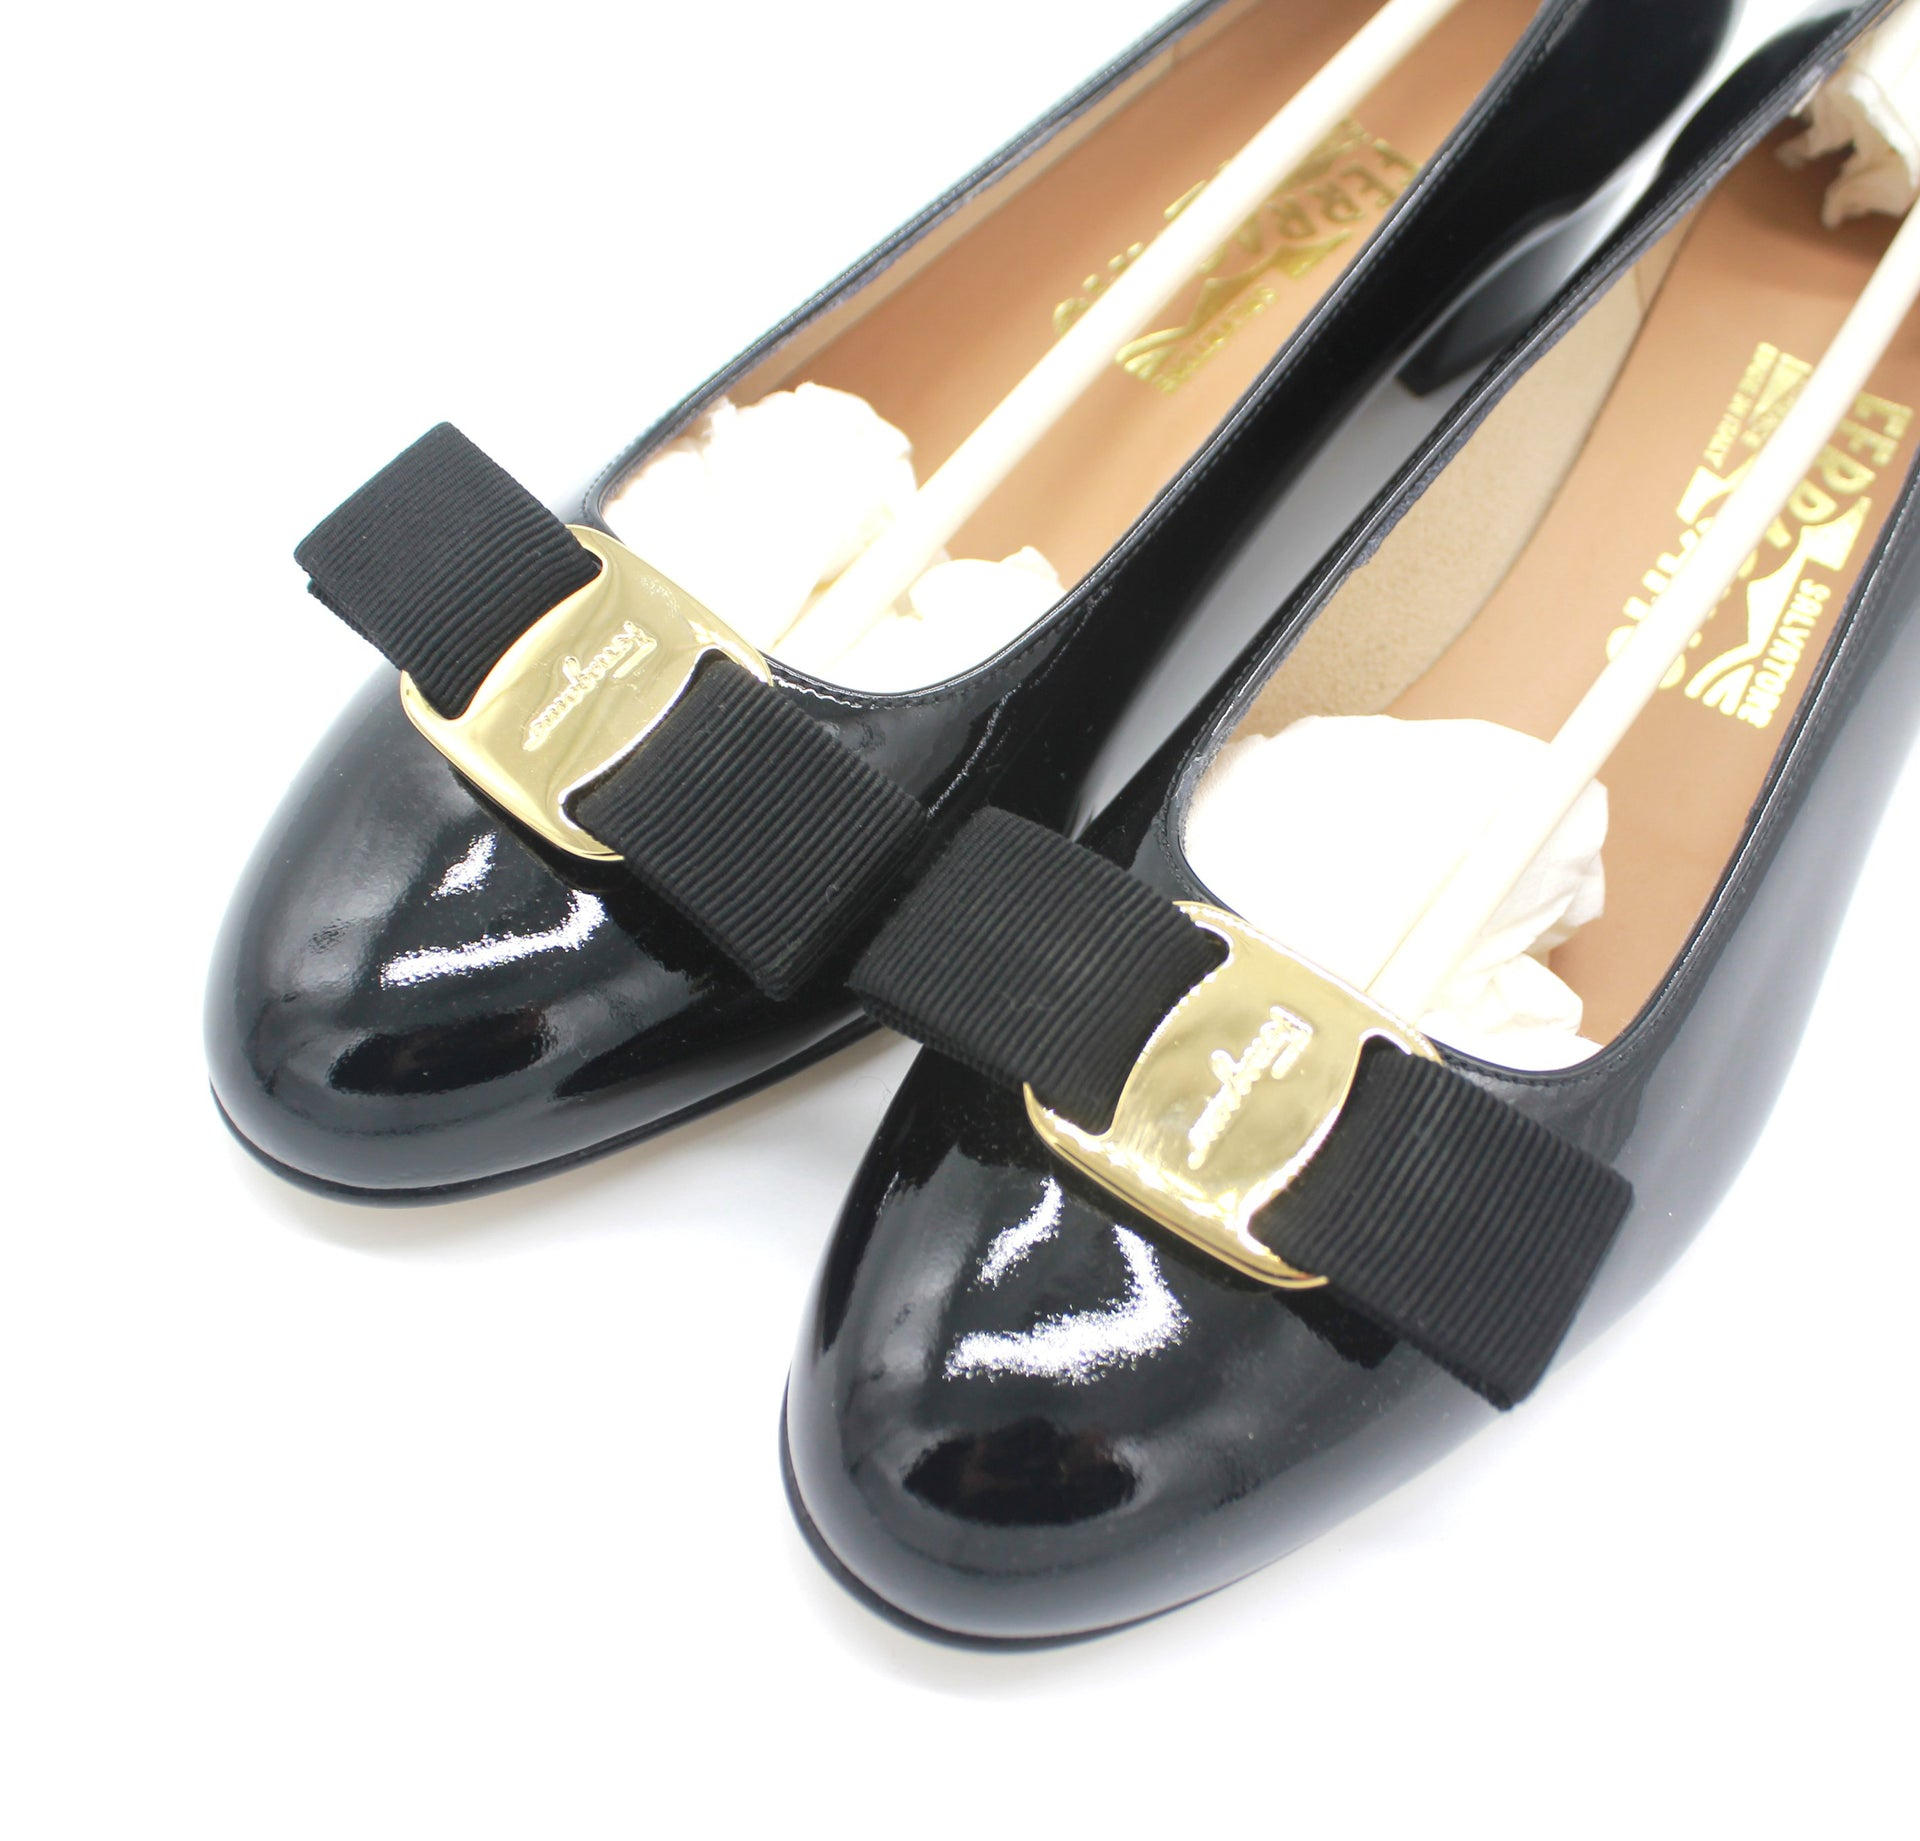 Ferragamo Vara Bow Pump Shoes